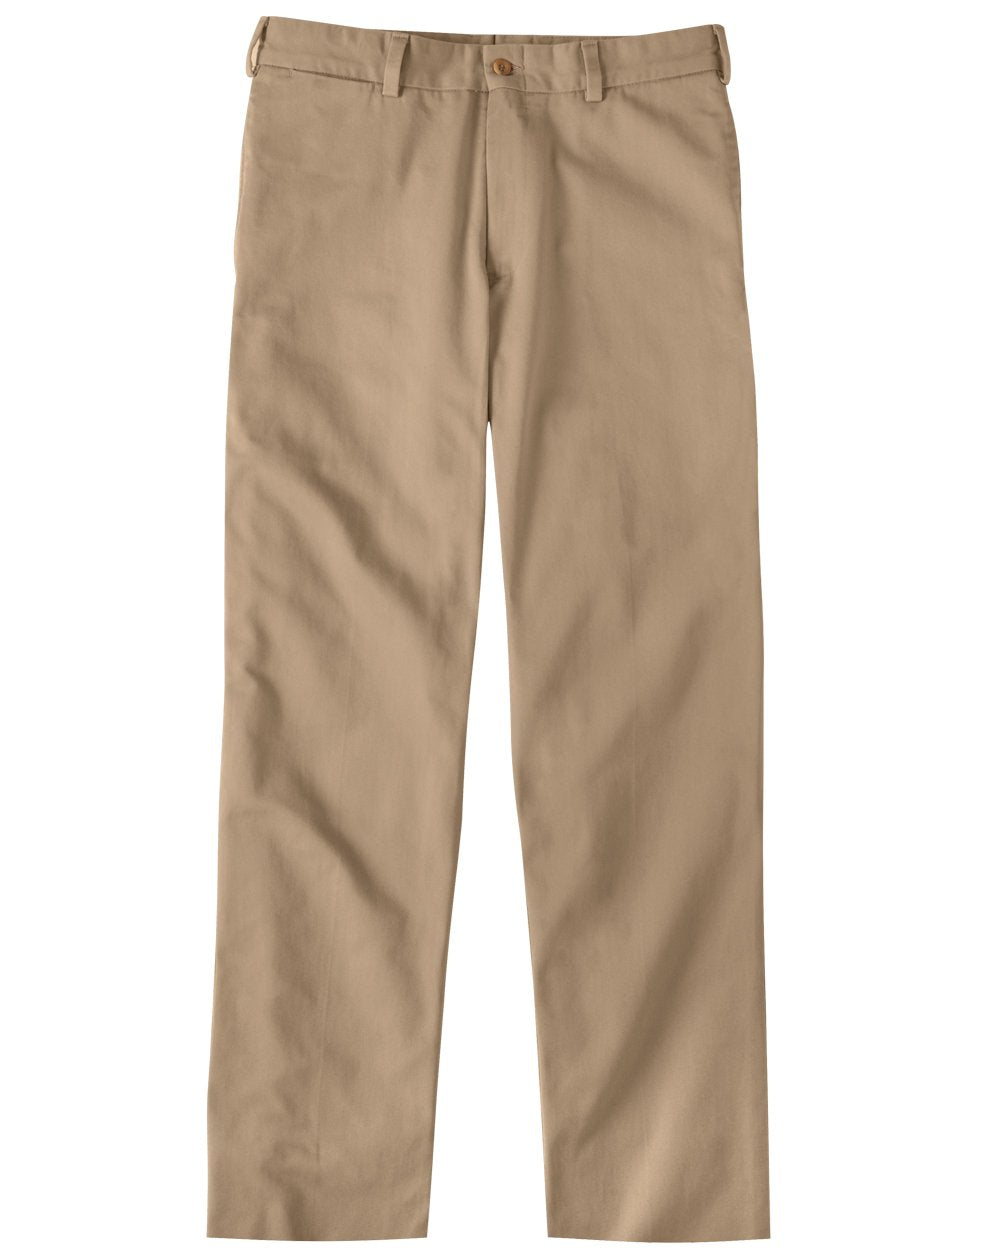 Bills Khakis Classic Fit Original Twill Pant | Khaki